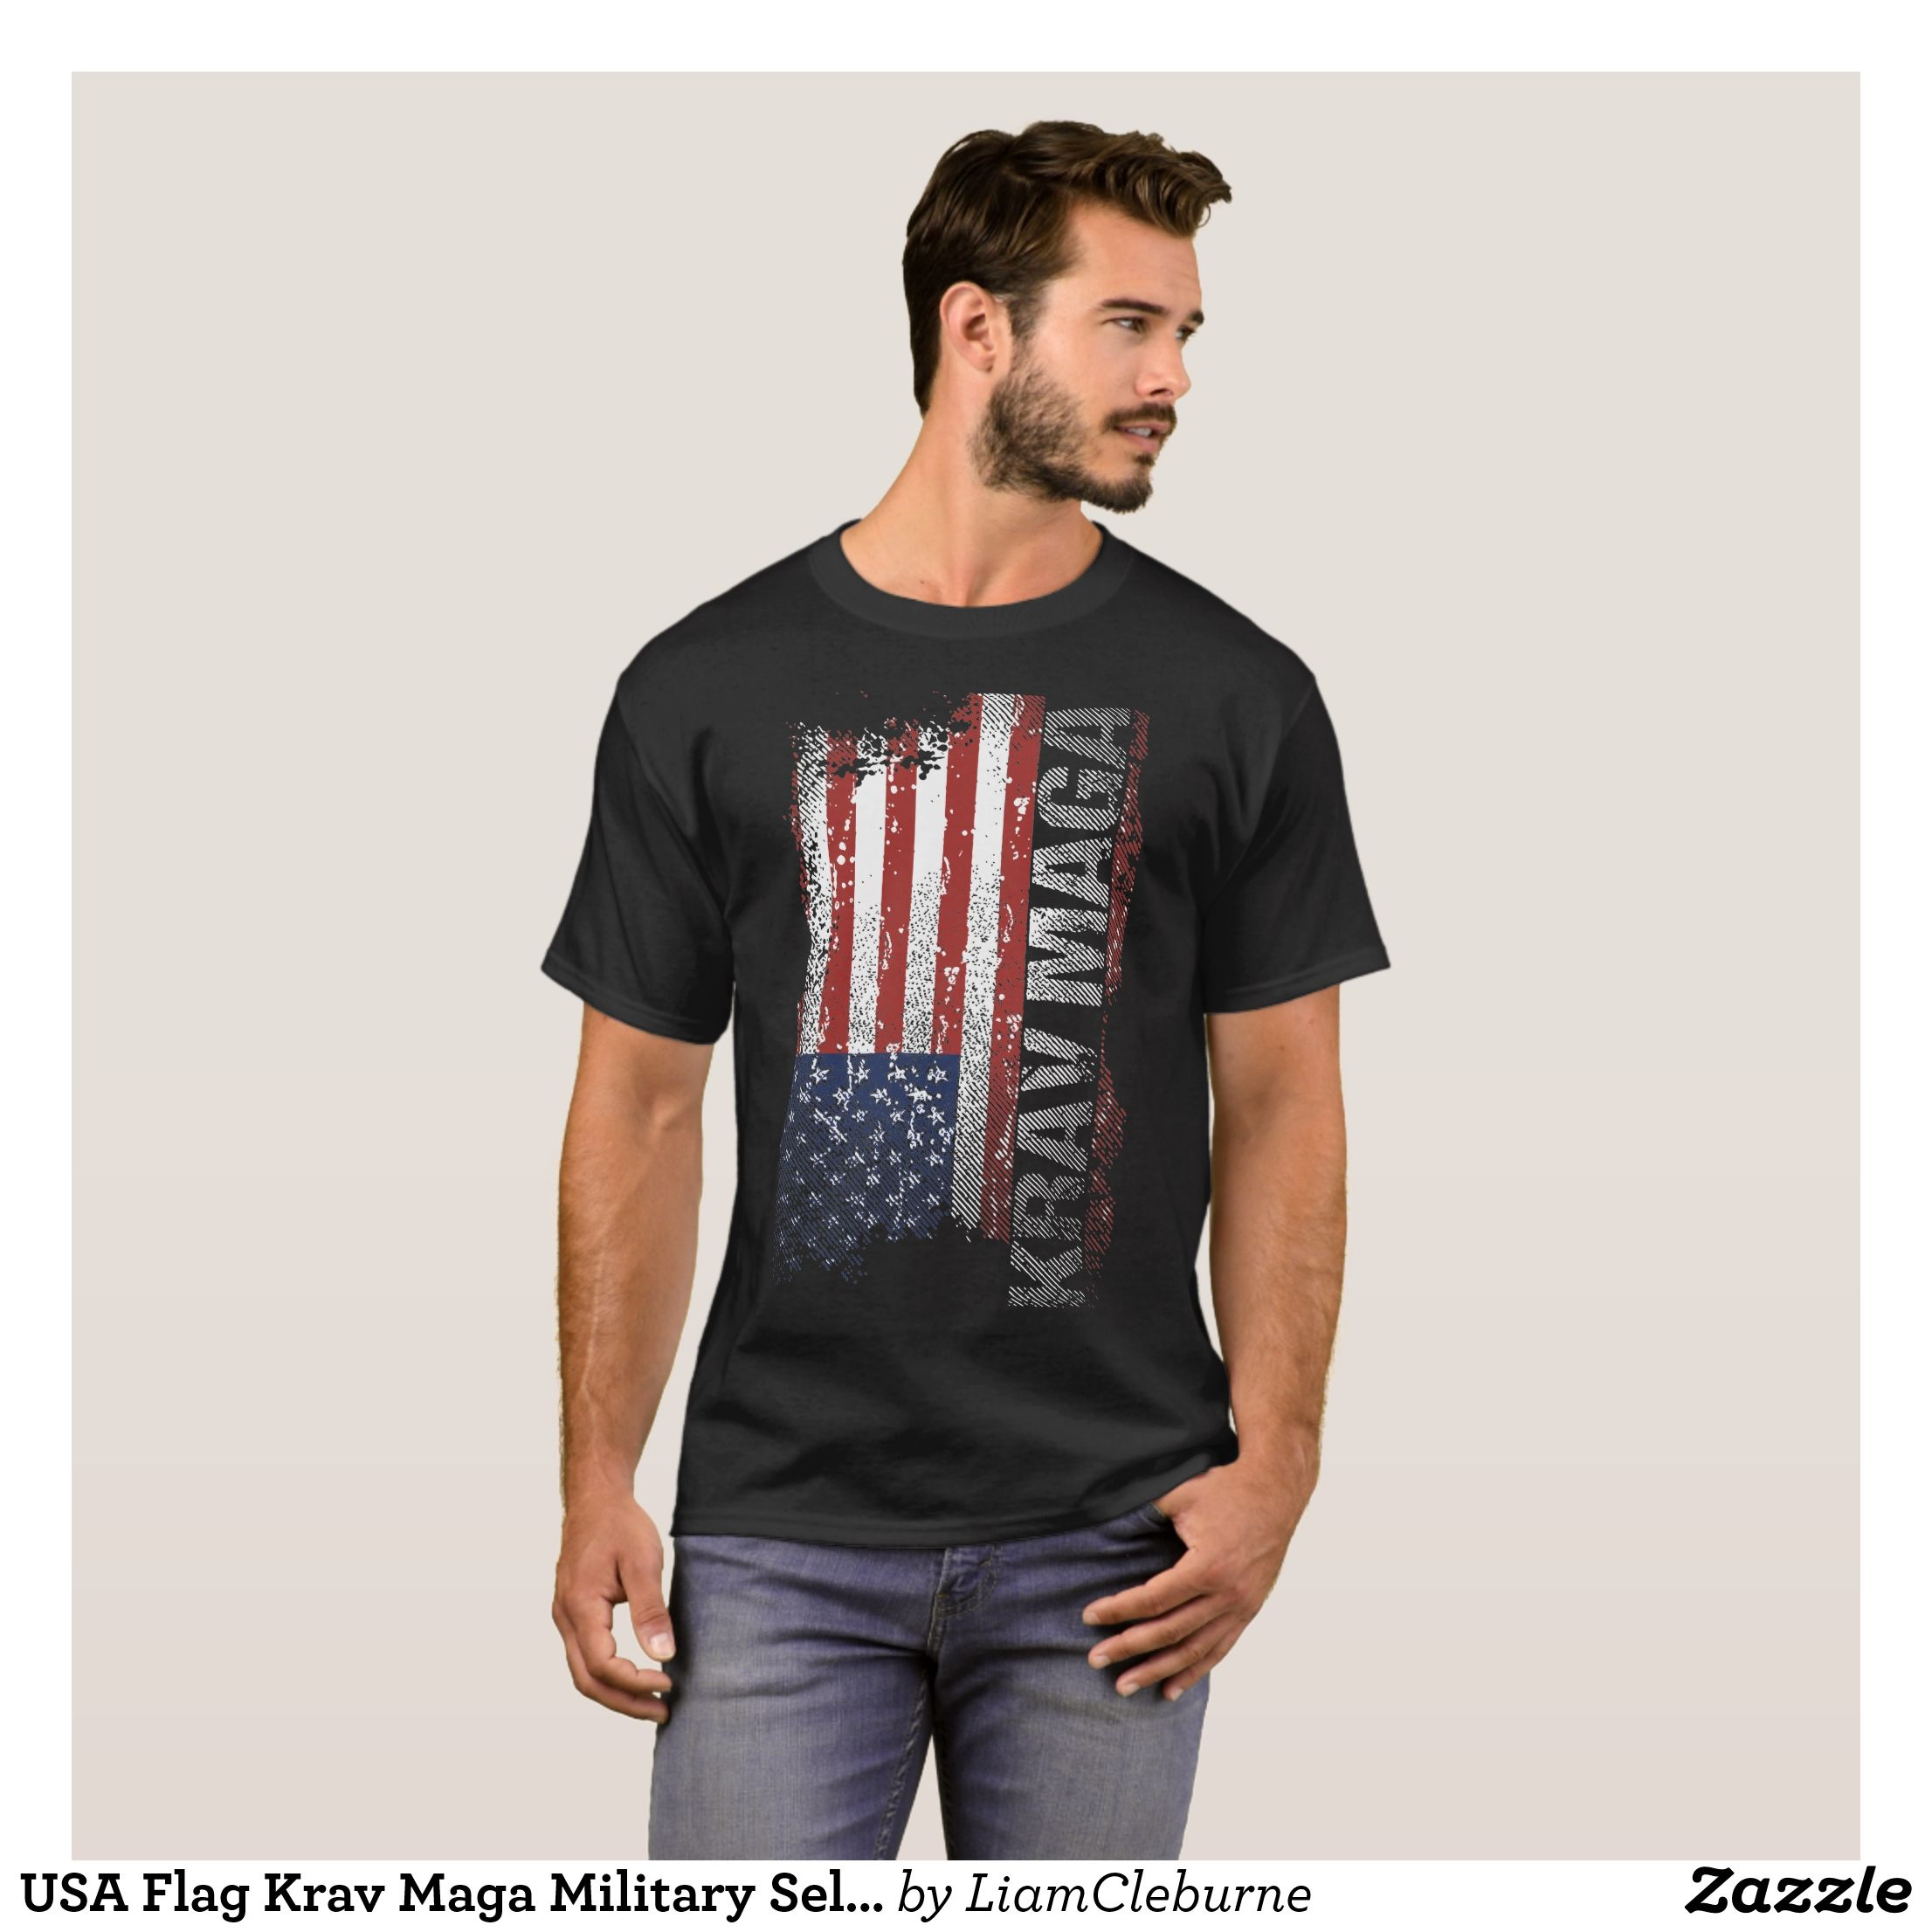 e706d1e754 USA Flag Krav Maga Military Self-Defense veteran t T-Shirt - Heavyweight Pre